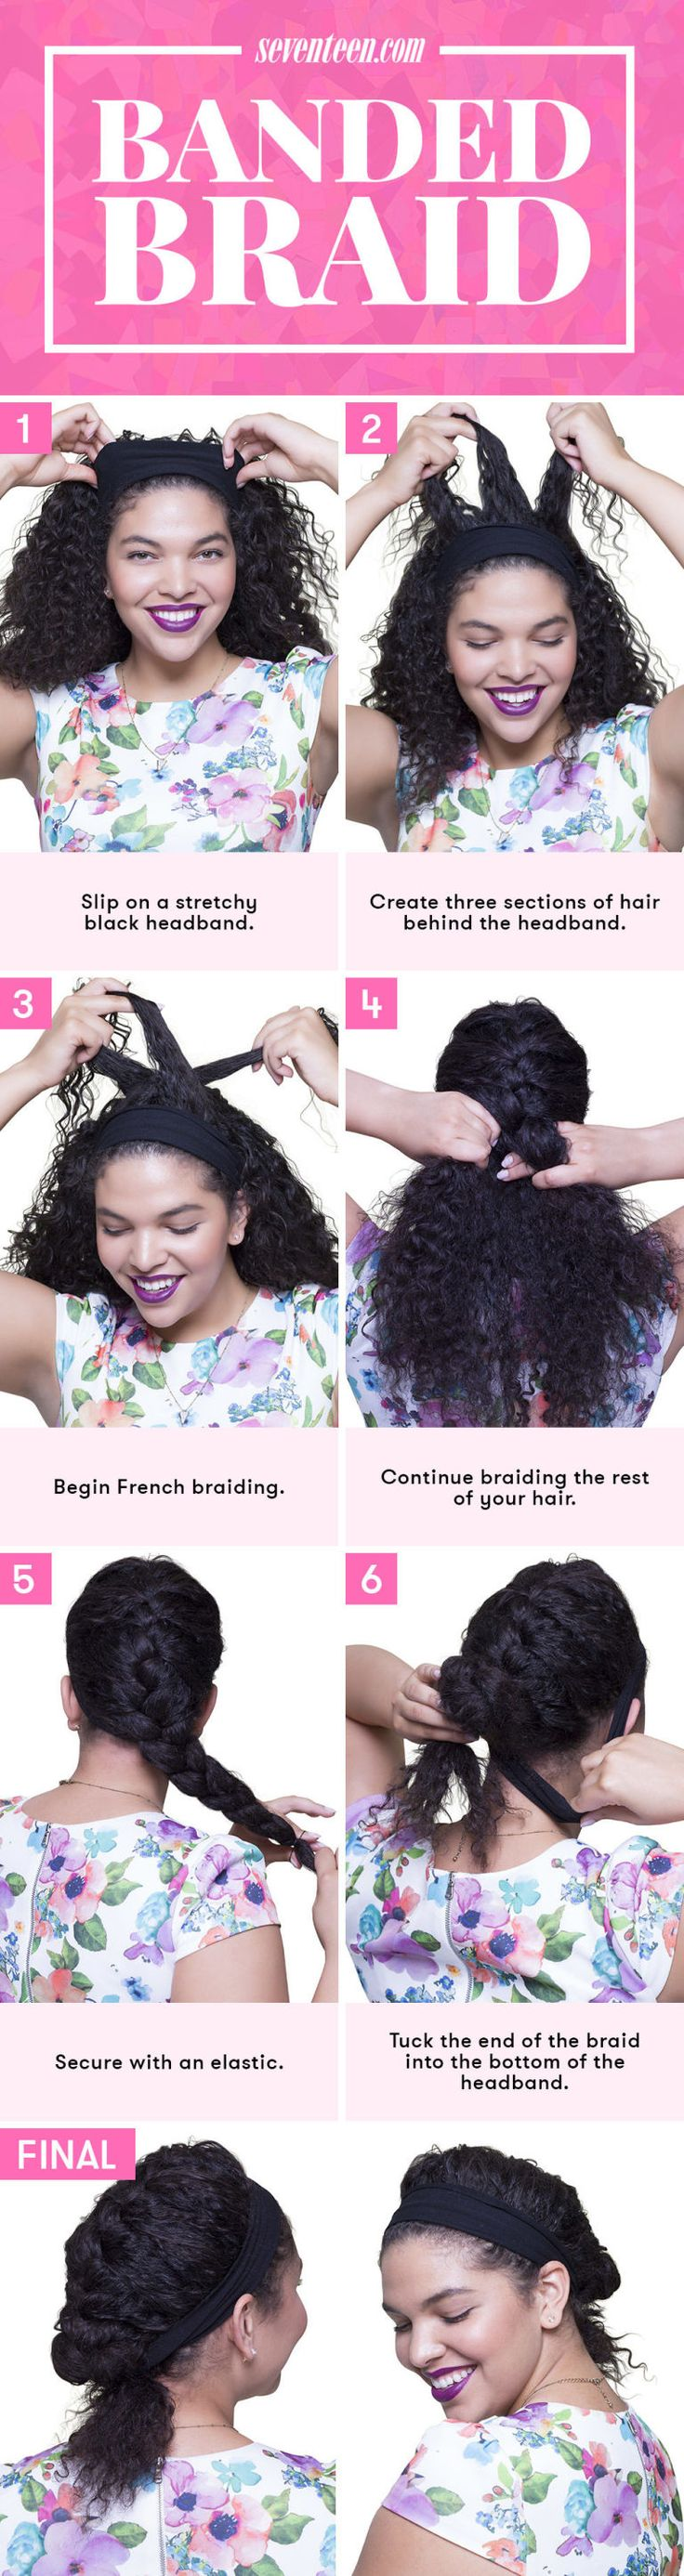 The 330 best Hair images on Pinterest